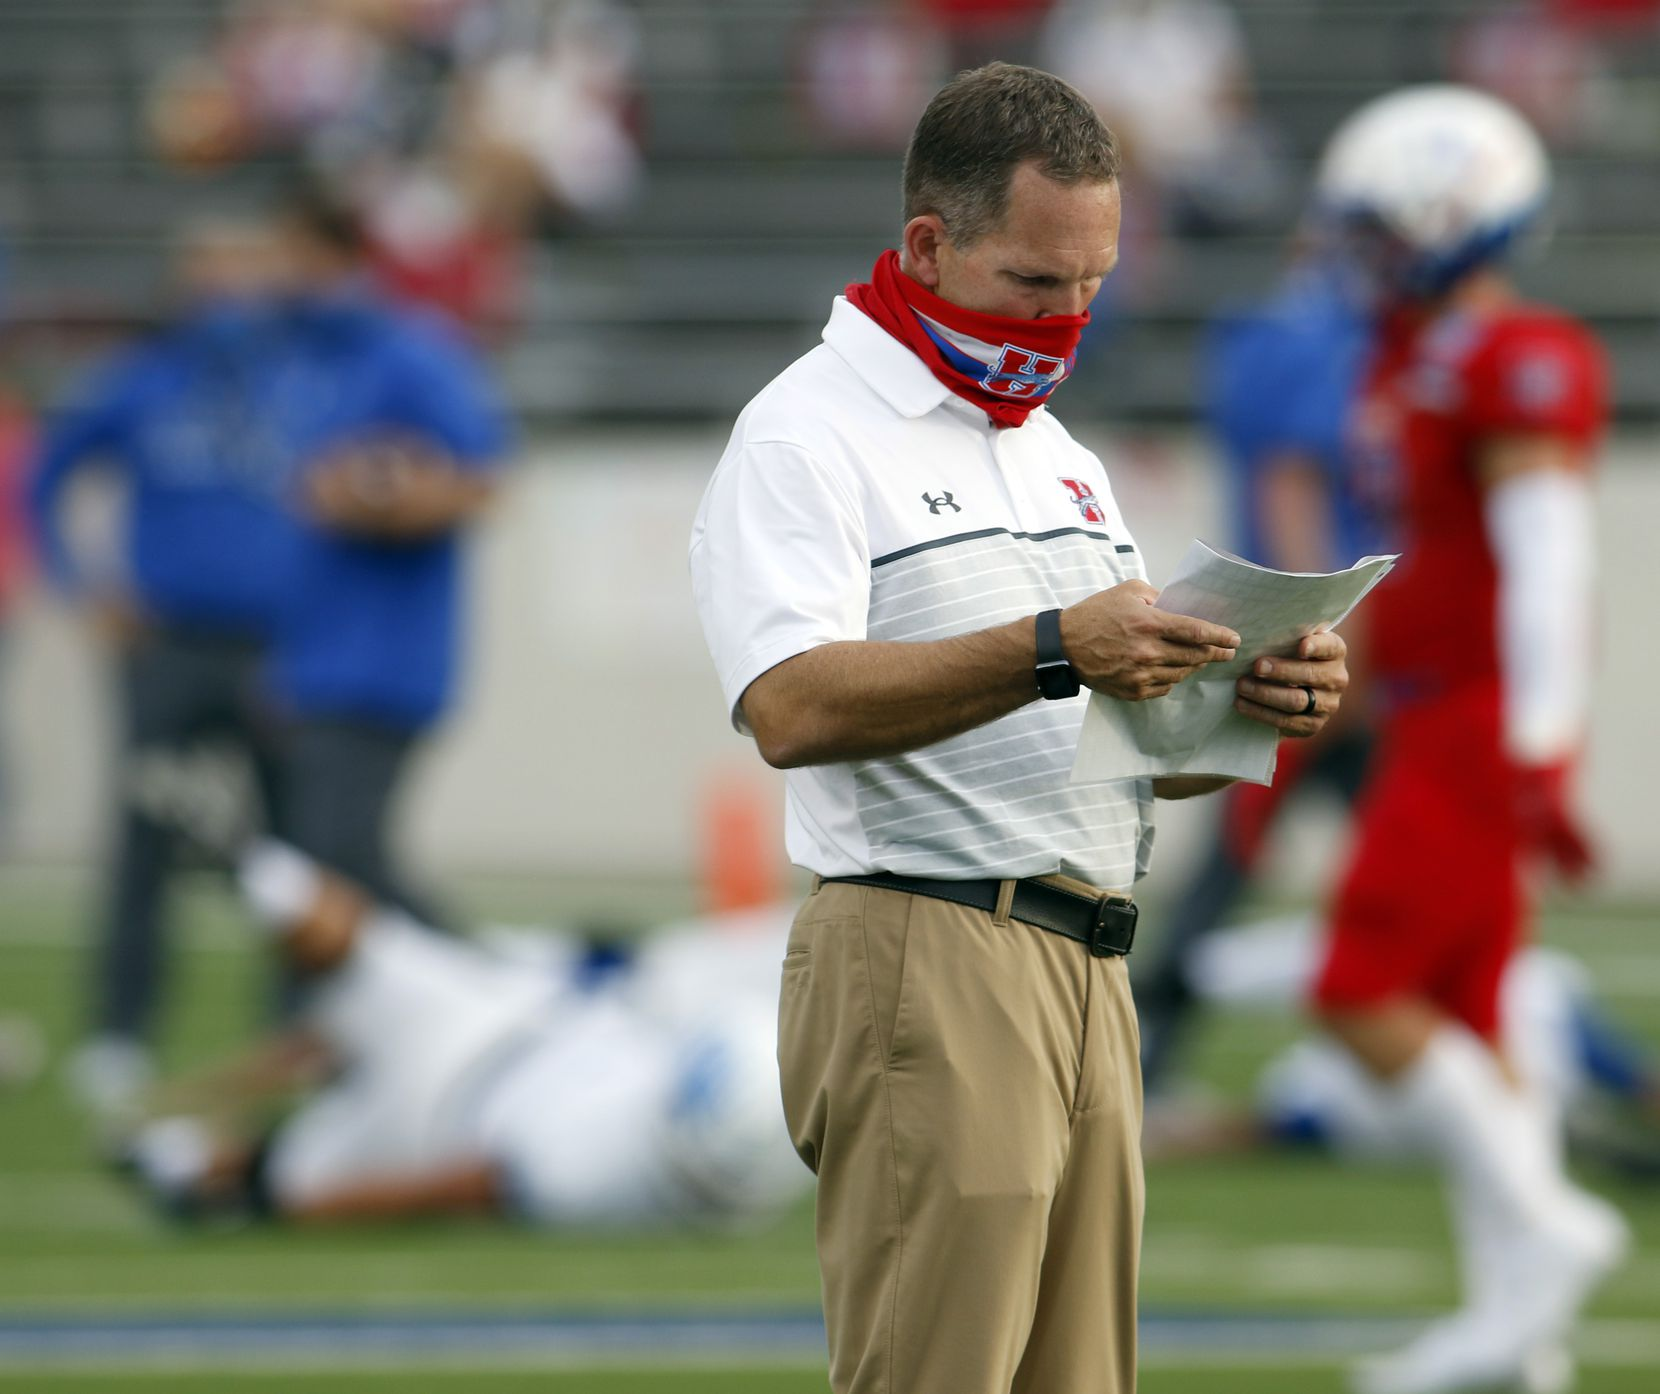 Midlothian Heritage head football coach Lee Wiginton visually peruses his play card during team warm-ups prior to the opening kick-off against Lindale. The two teams played their Class 4A football game at Midlothian ISD Multipurpose Stadium in Midlothian on September 4, 2020. (Steve Hamm/ Special Contributor)